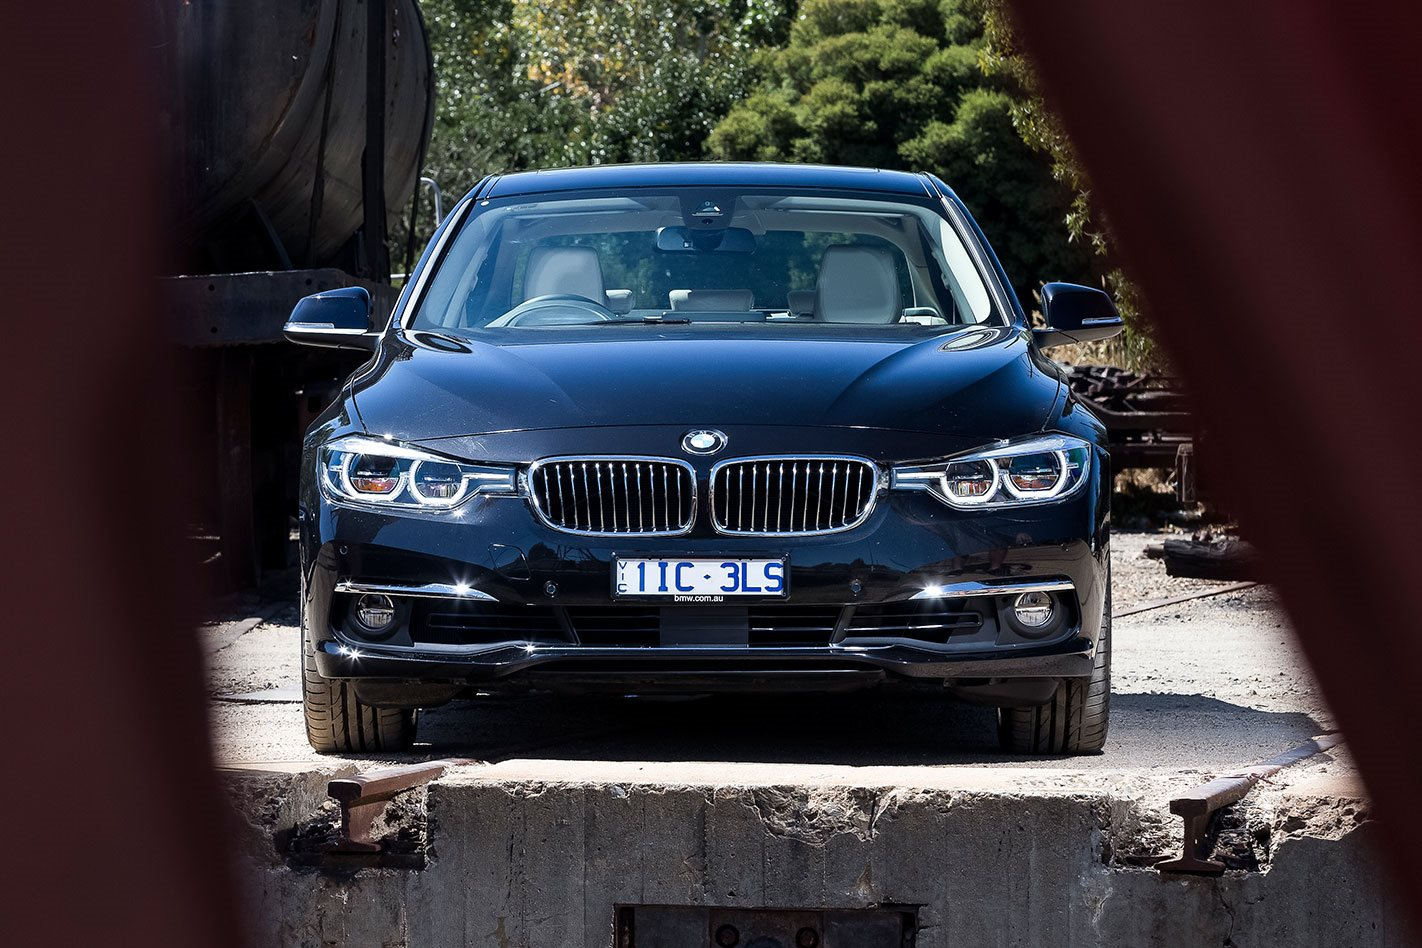 BMW-340i front facing